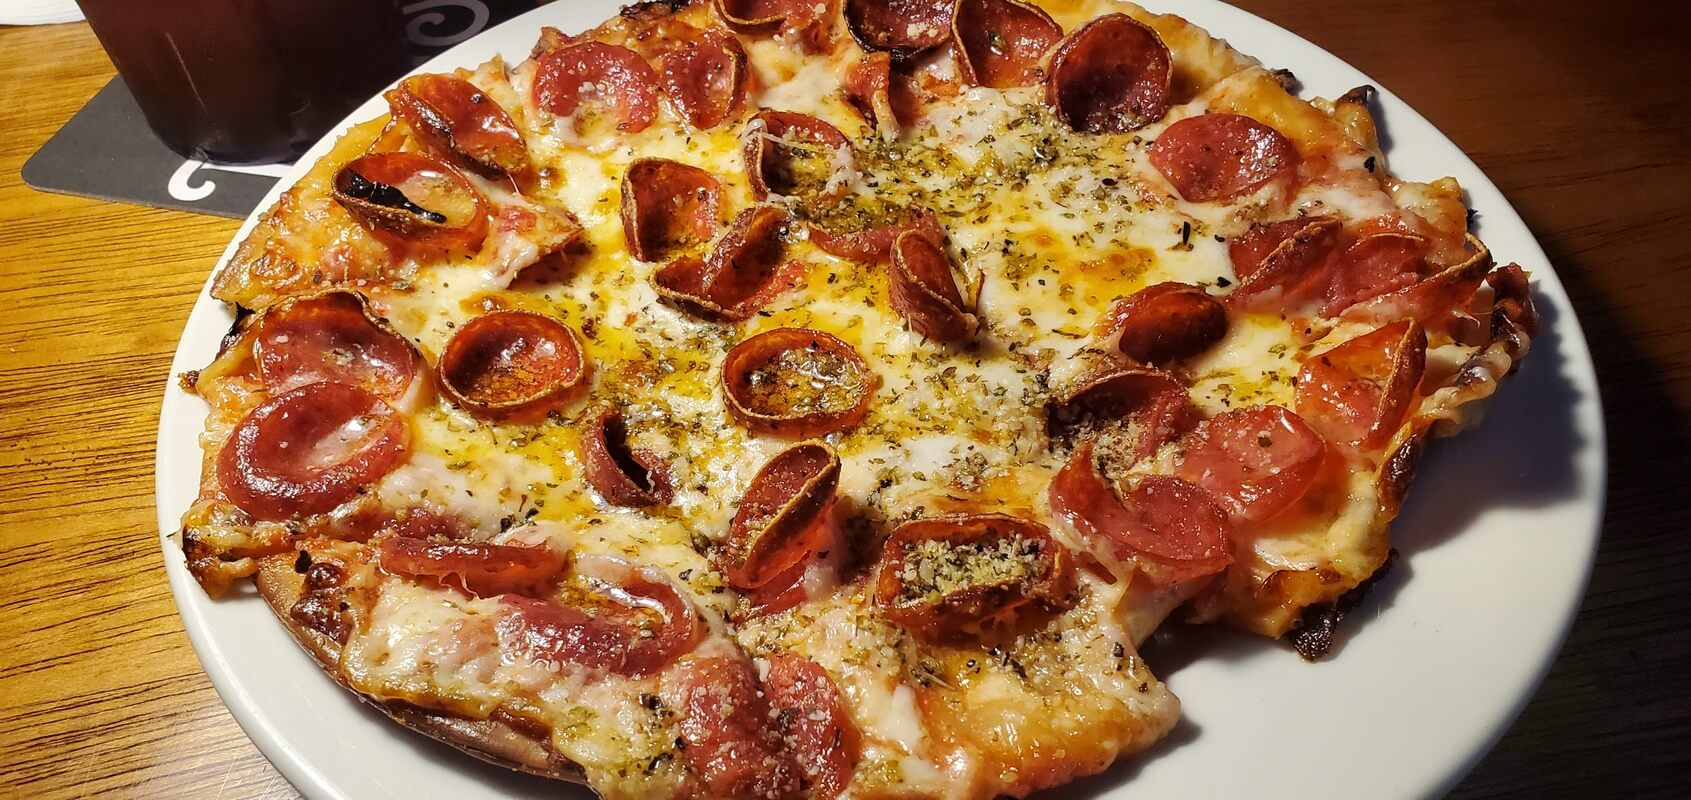 Pepperoni Pizza from Gibbys Eatery and Sports Bar